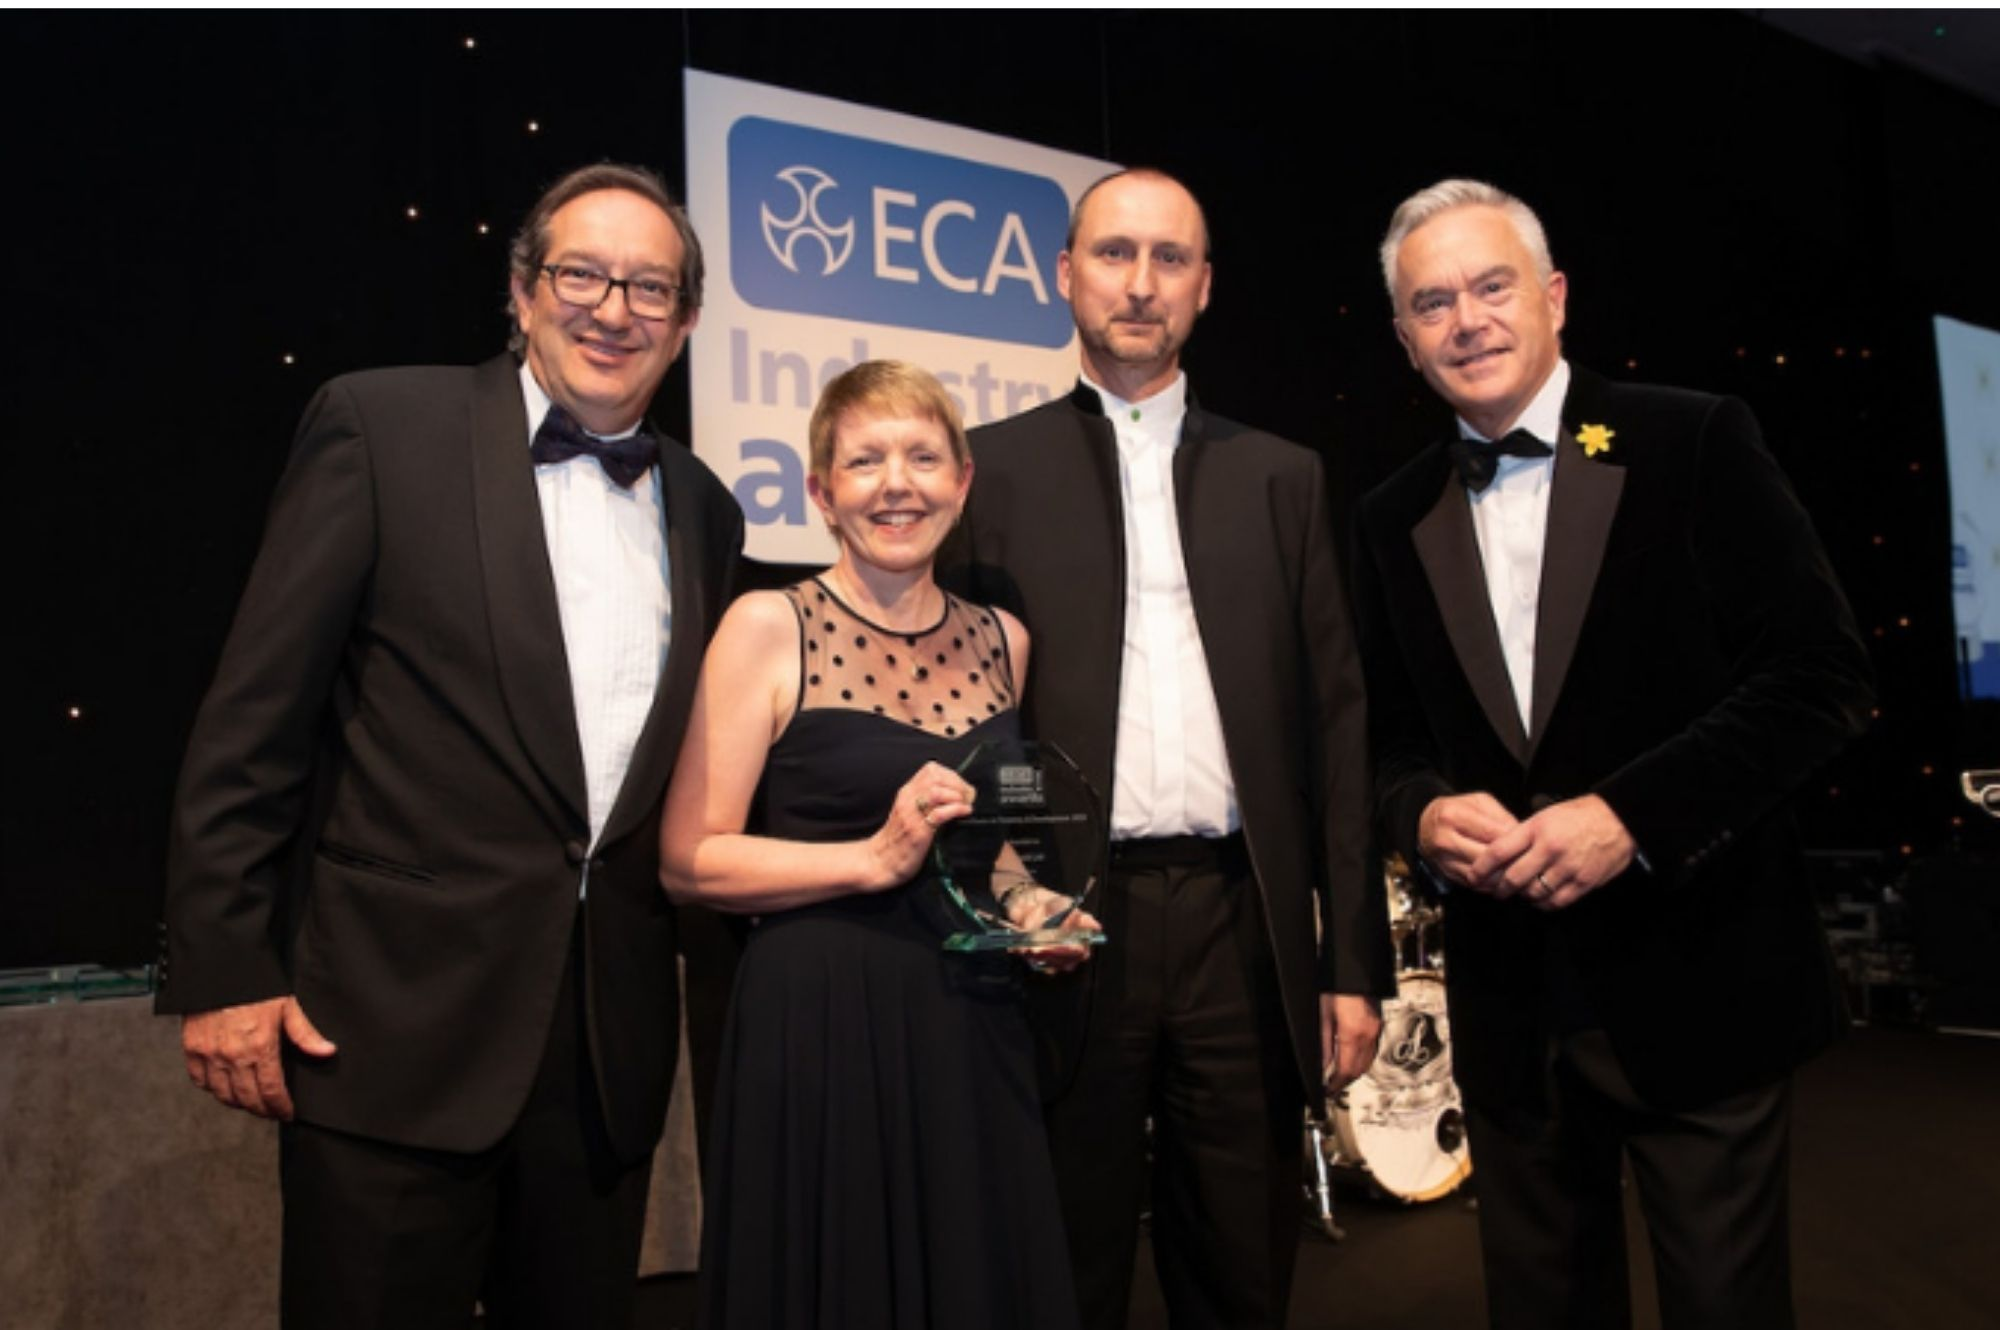 ECA Excellence in Training & Development Award sponsored by JTL